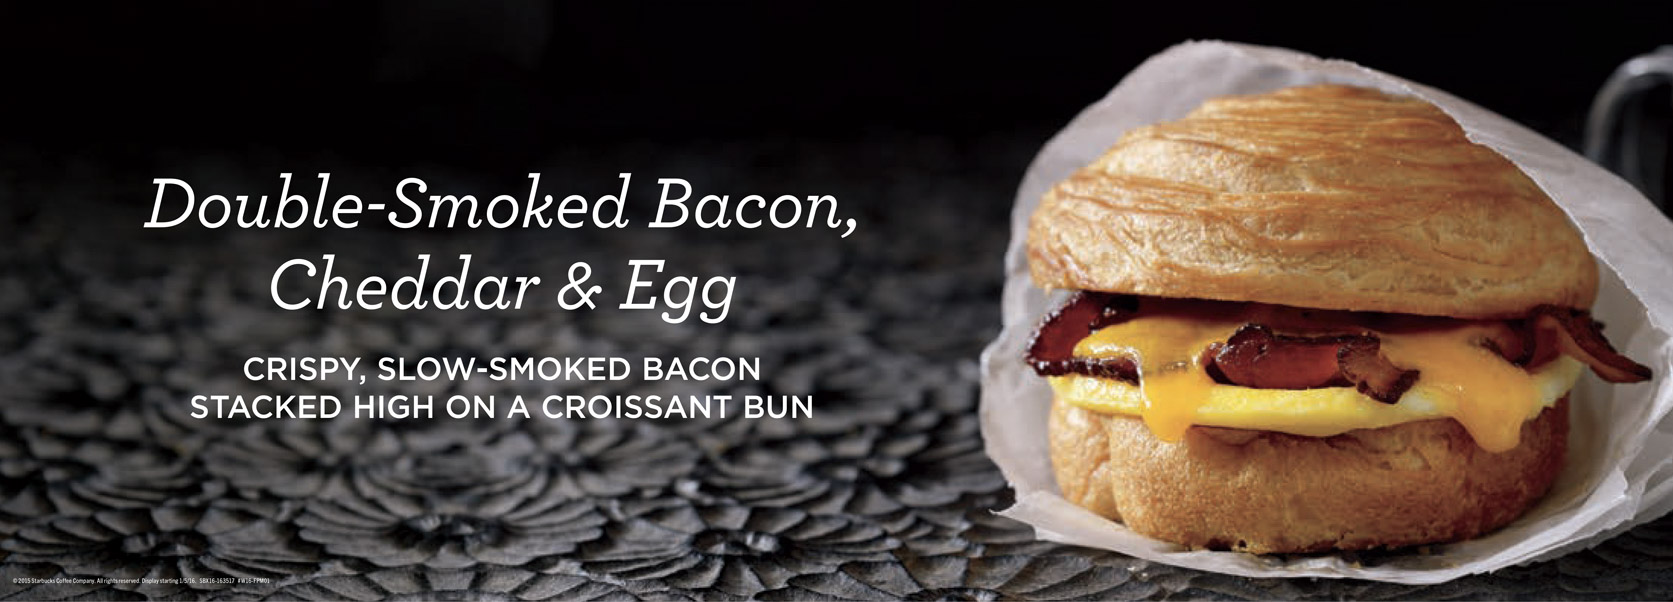 Robyn Valarik San Francisco Based Food & Drink Stylist - Starbucks, breakfast sandwich, egg, bacon, cheese, croissant, flaky, melty